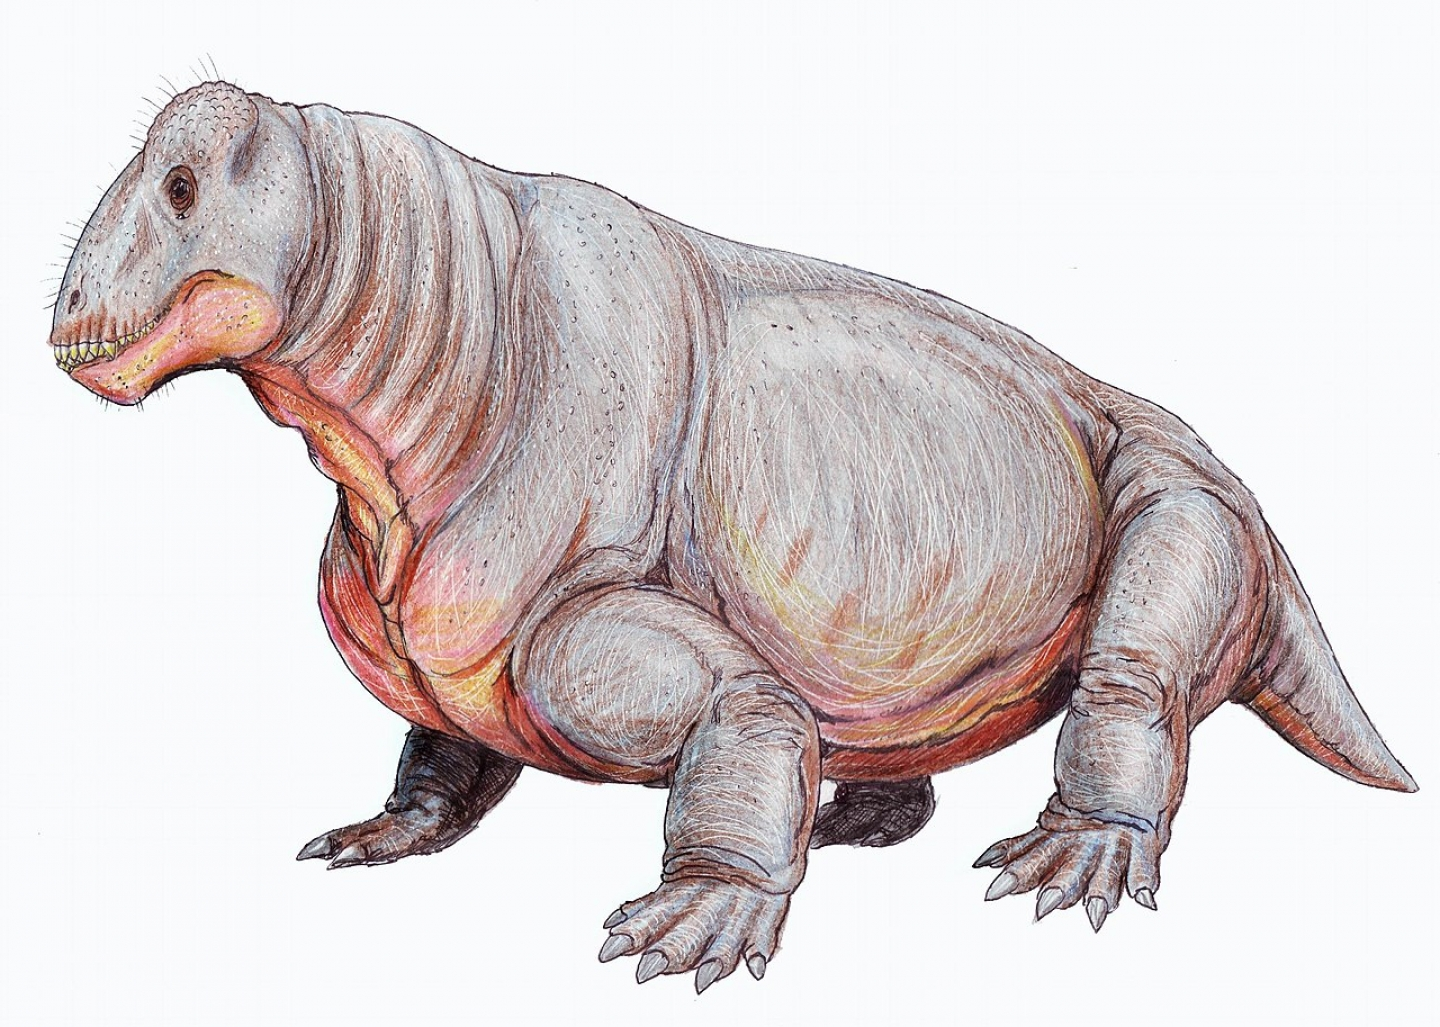 Amazing Creatures From Before the Time of the Dinosaurs